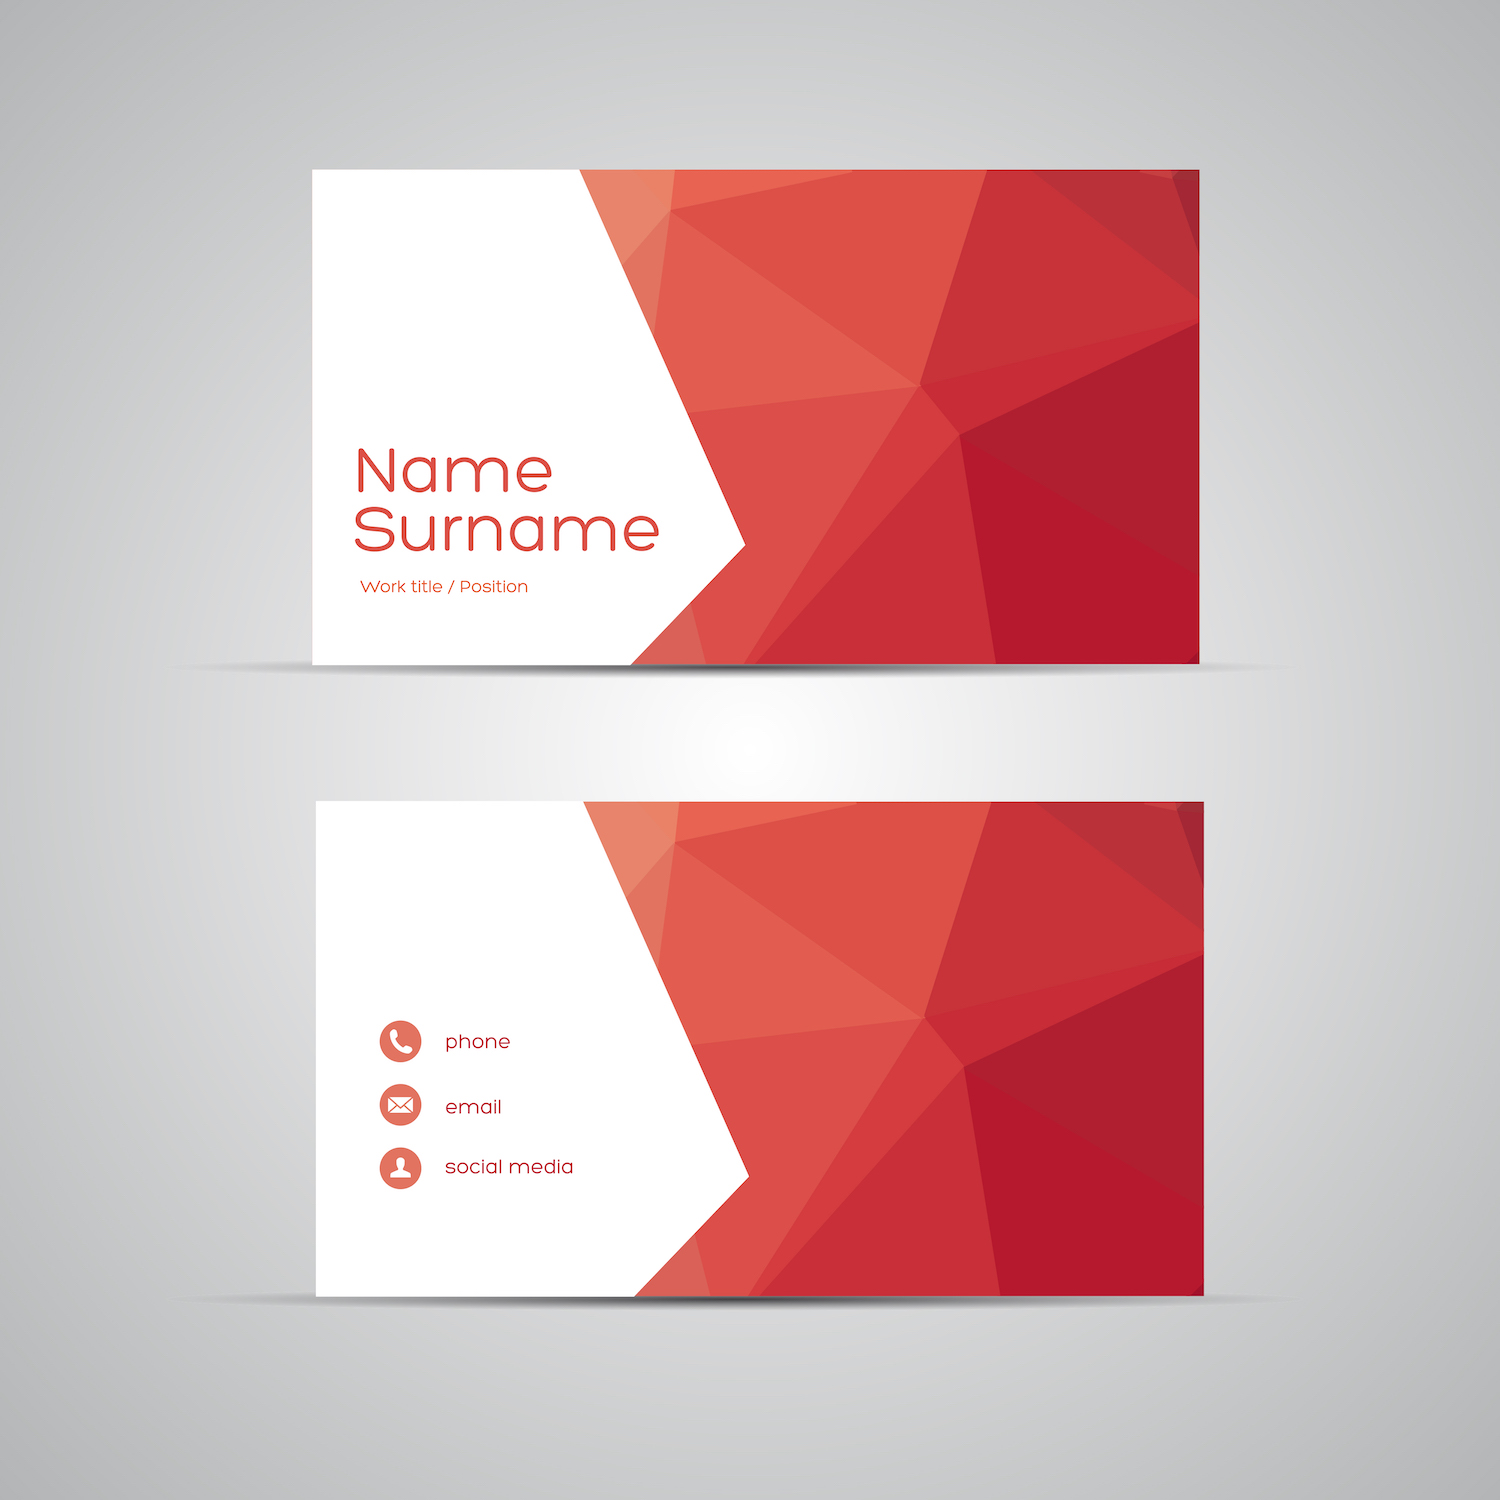 Pharmacy-Business-Card-Design.jpg